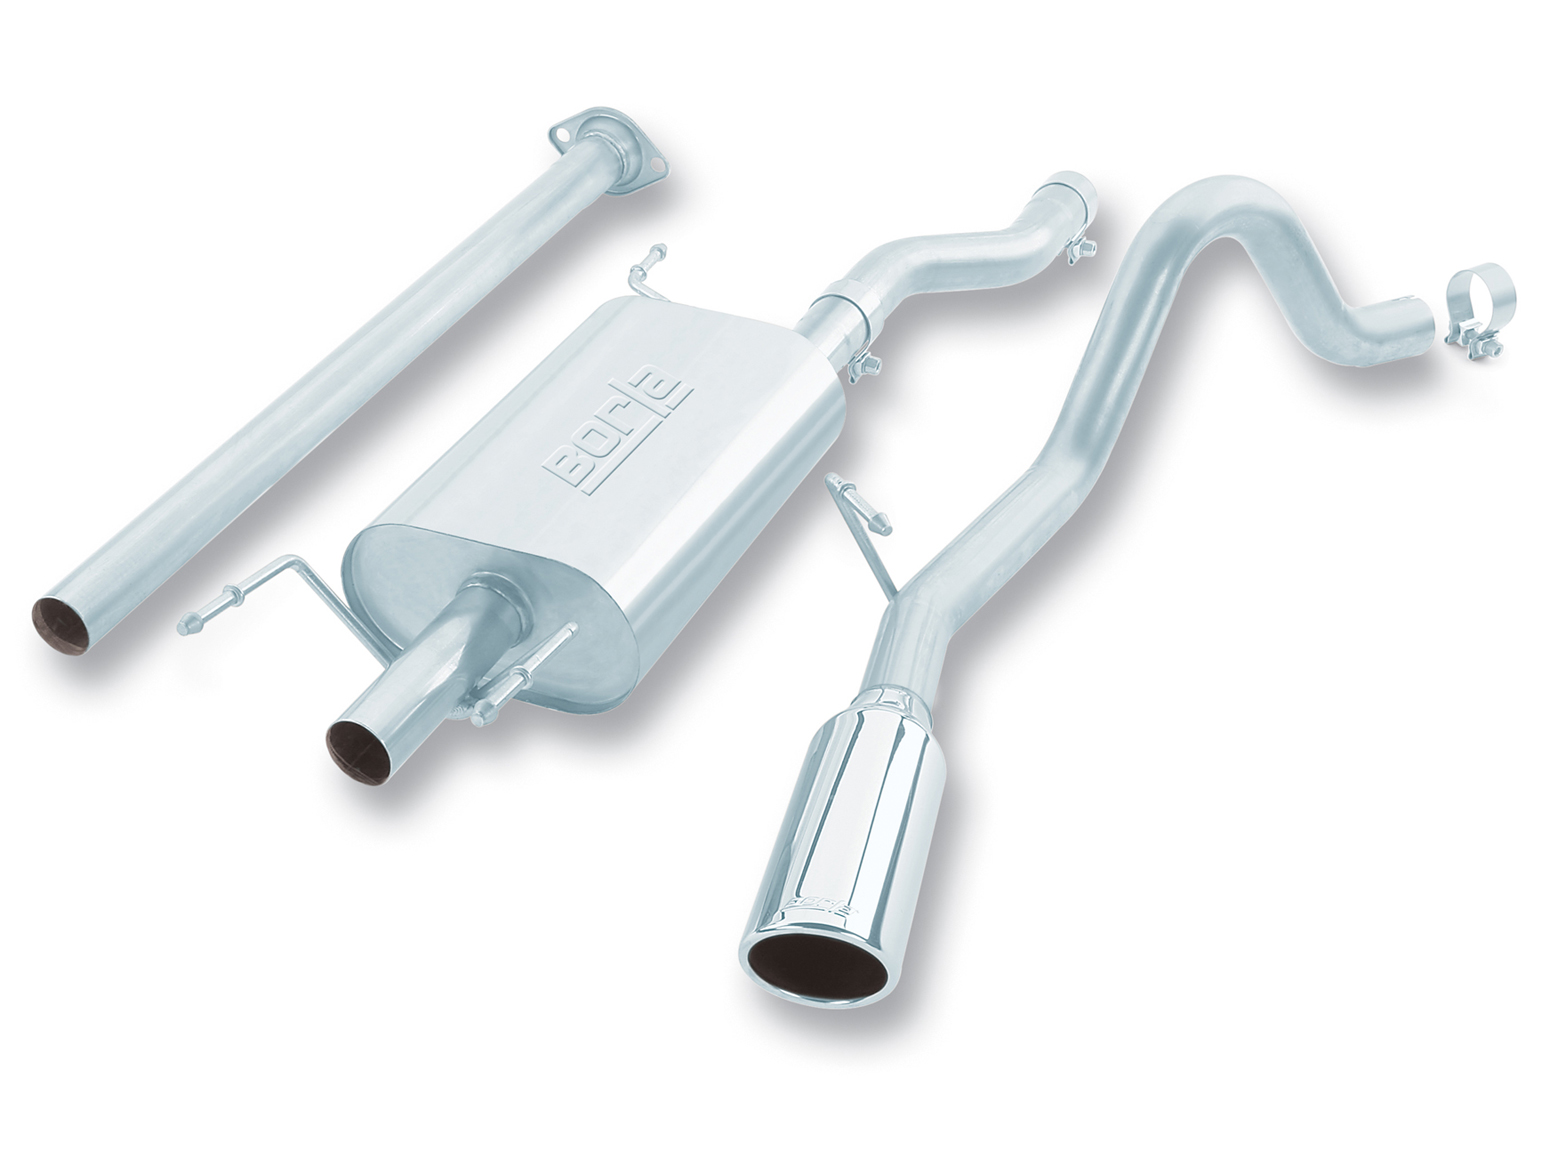 "Toyota Tacoma 4dr 2005-2011 Borla 2.25"" Cat-Back Exhaust System - Single Round Rolled Angle-Cut  Long X Single Round Rolled Angle-Cut Intercooled"" Dia"